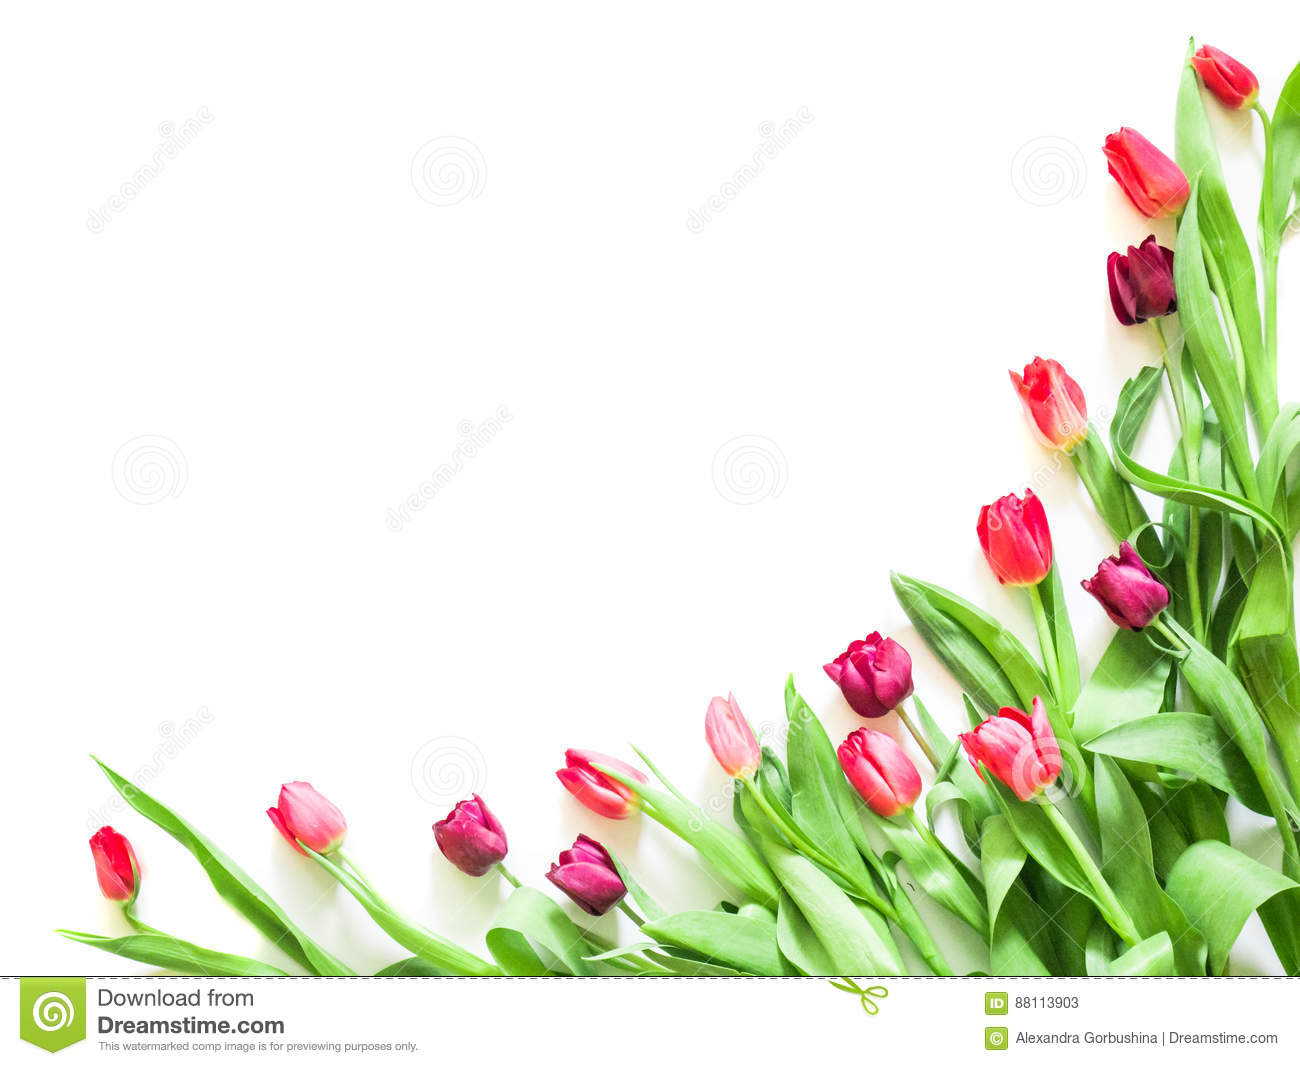 Present card with tulip flowers corners template stock image present card with tulip flowers corners template pronofoot35fo Choice Image